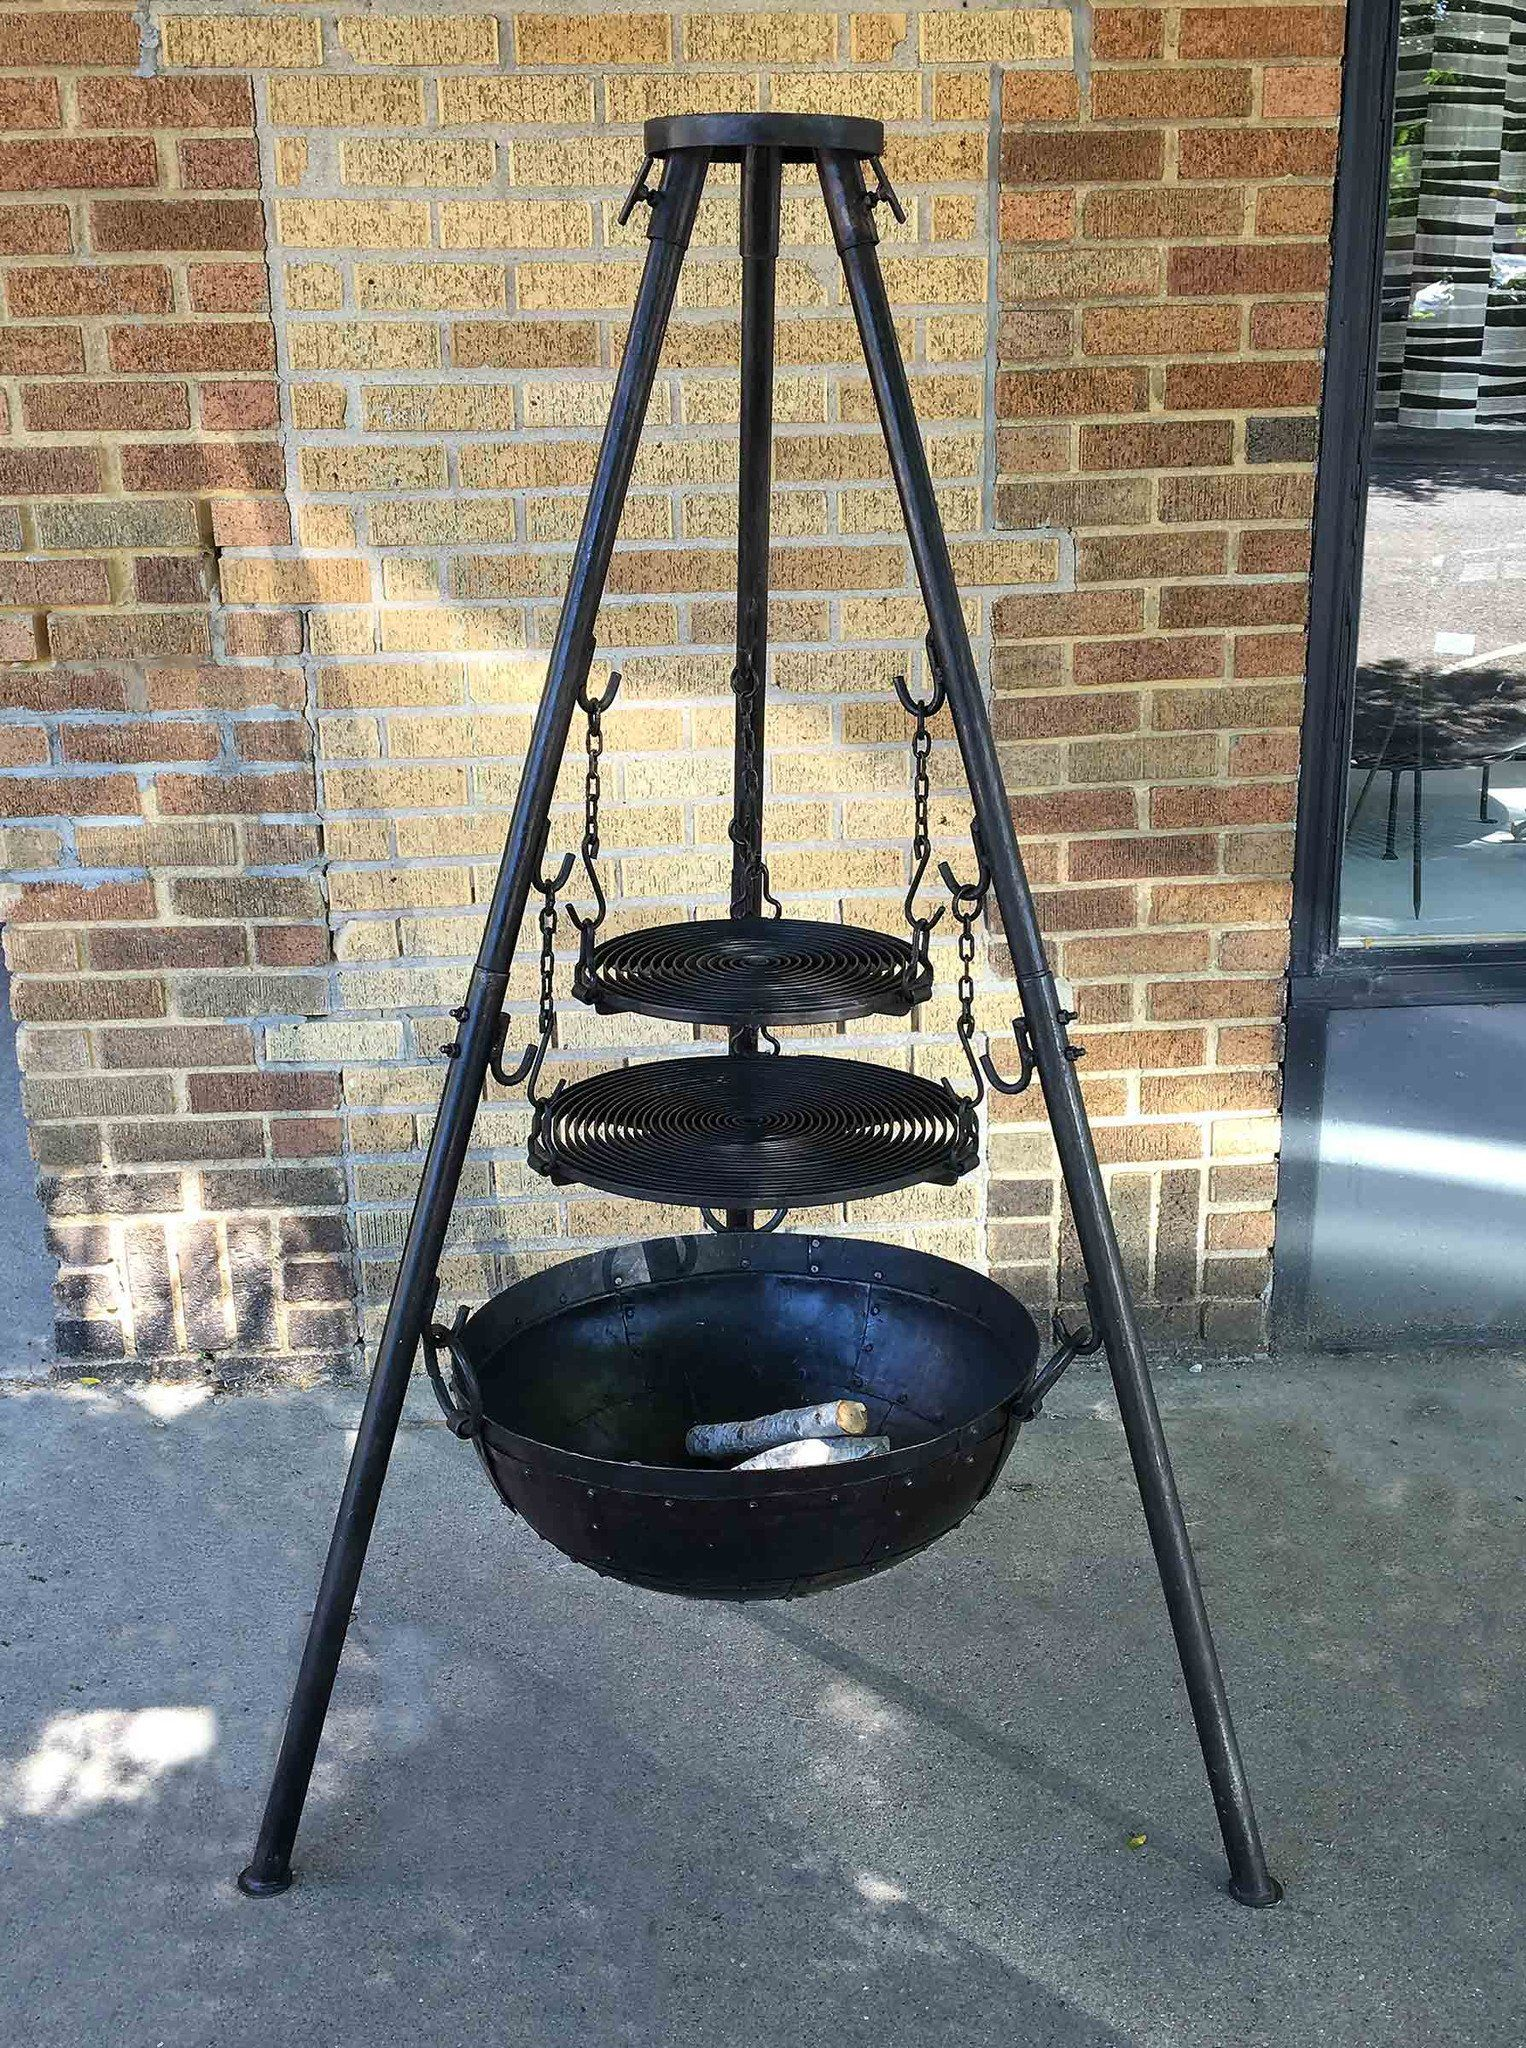 Smart Large Tri-Pod Firebowl Cooking Set Includes Two Grill Grates KA52